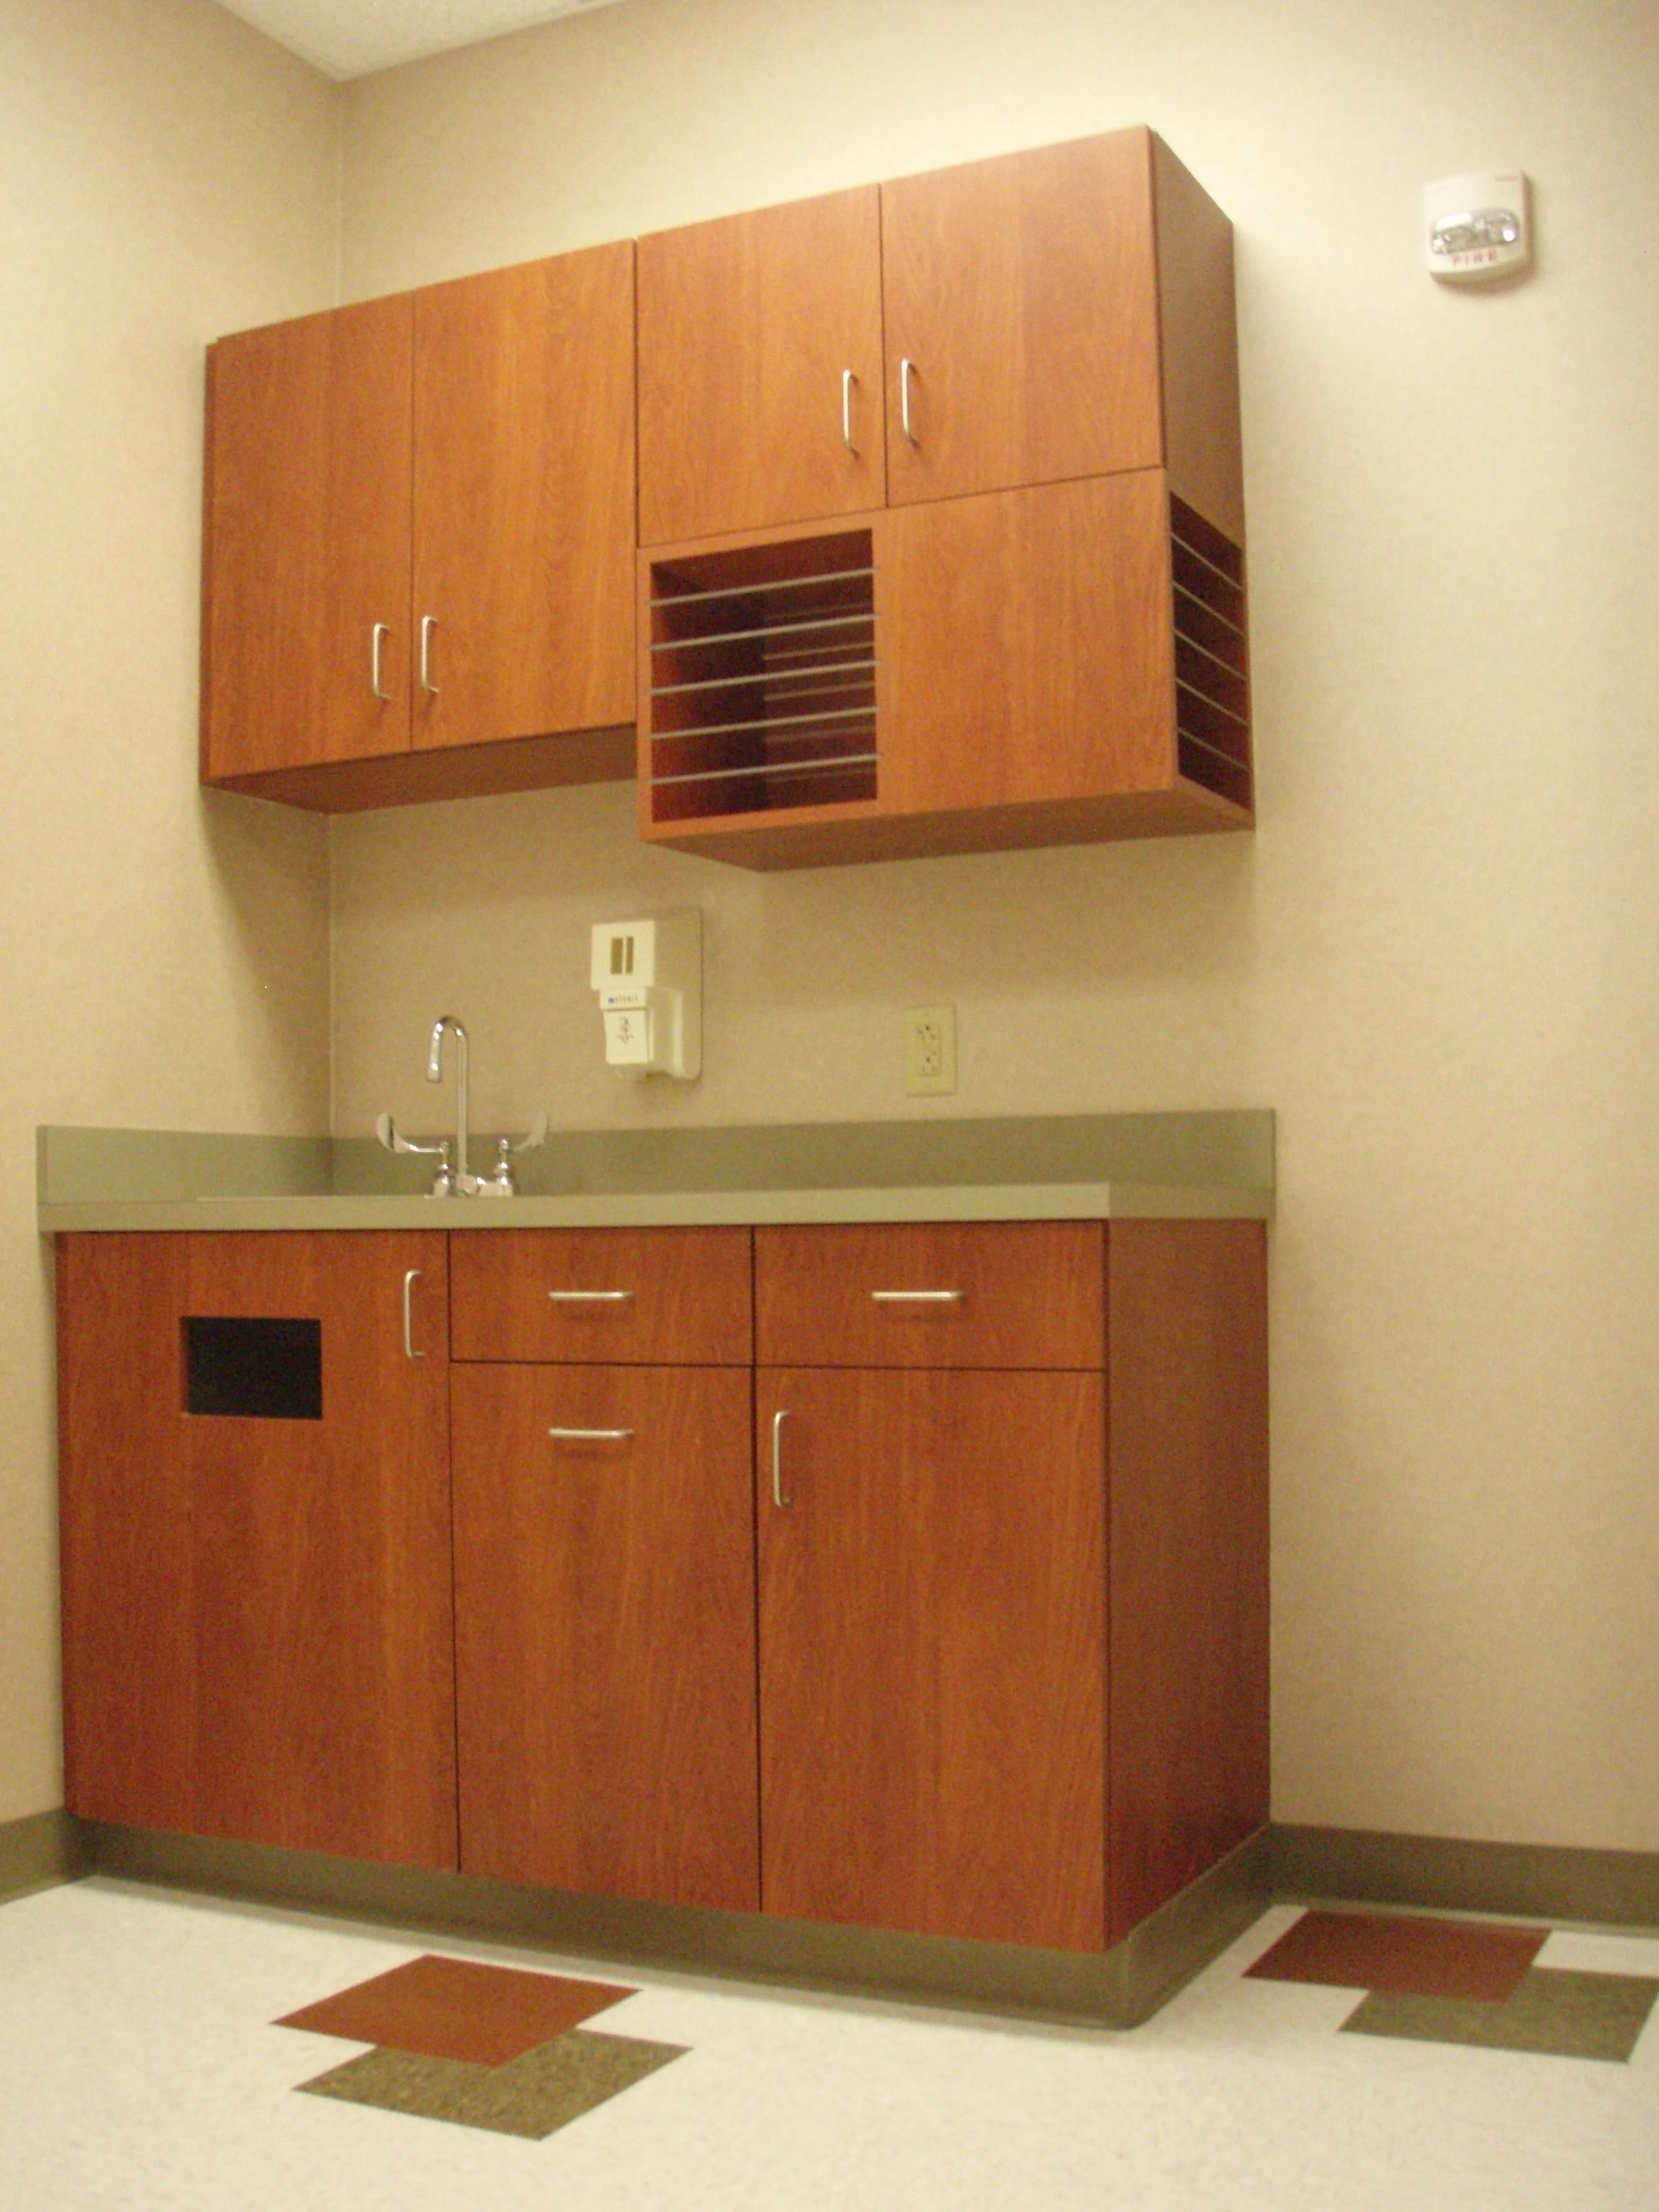 Cmc Exam Room Cabinets Lbc Design Cabinetry Cornelius Nc Medical Office